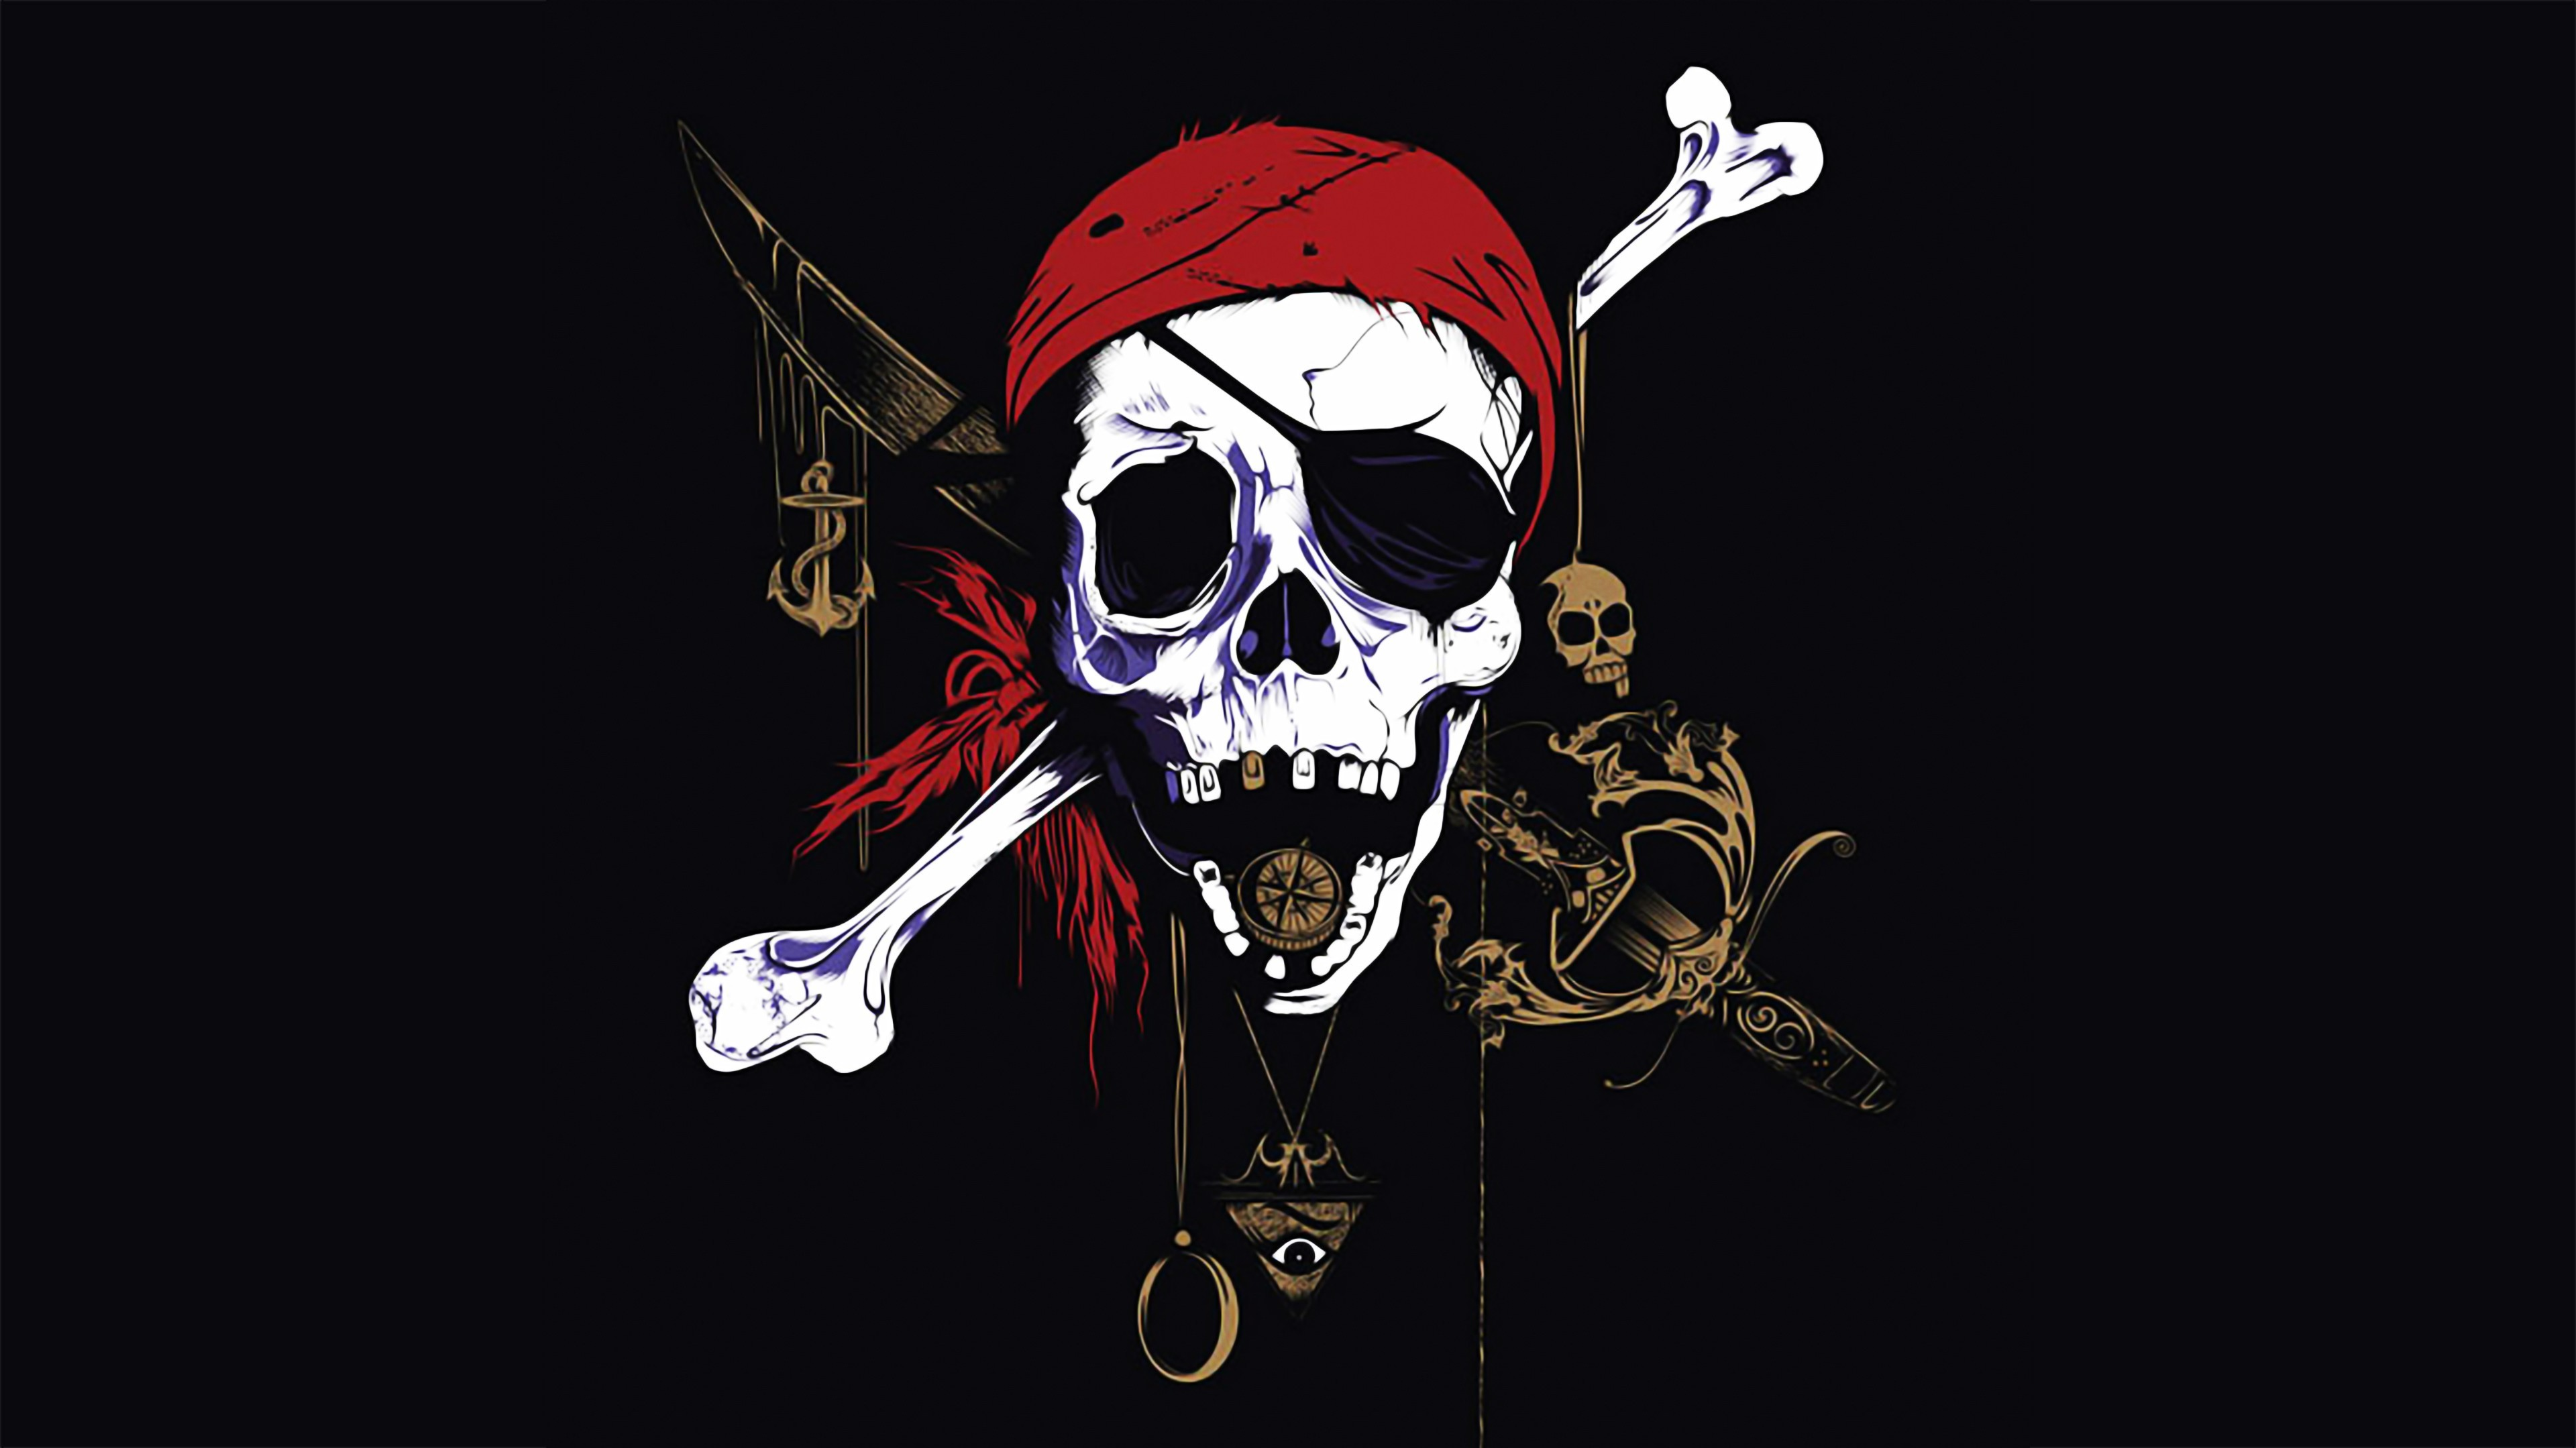 Res: 3840x2159, Pirate Skull Red Bandana Wallpaper